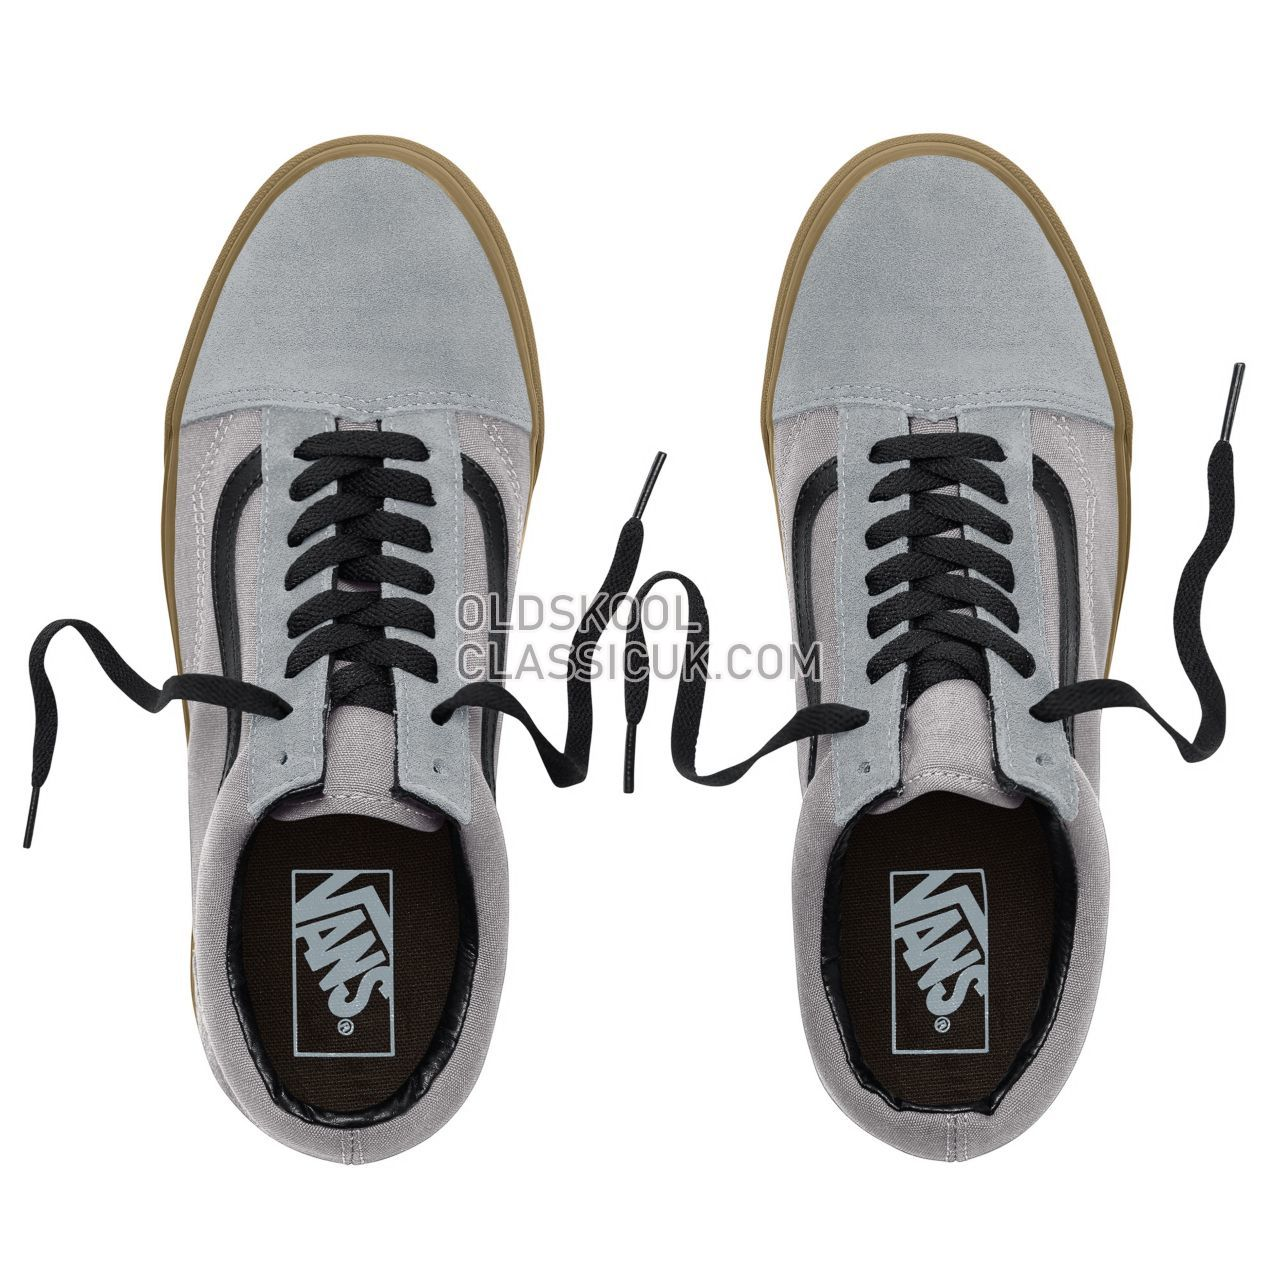 Vans Suede Gum Outsole Old Skool Sneakers Mens Womens Unisex (Gum Outsole) Alloy/Black VA38G1U40 Shoes